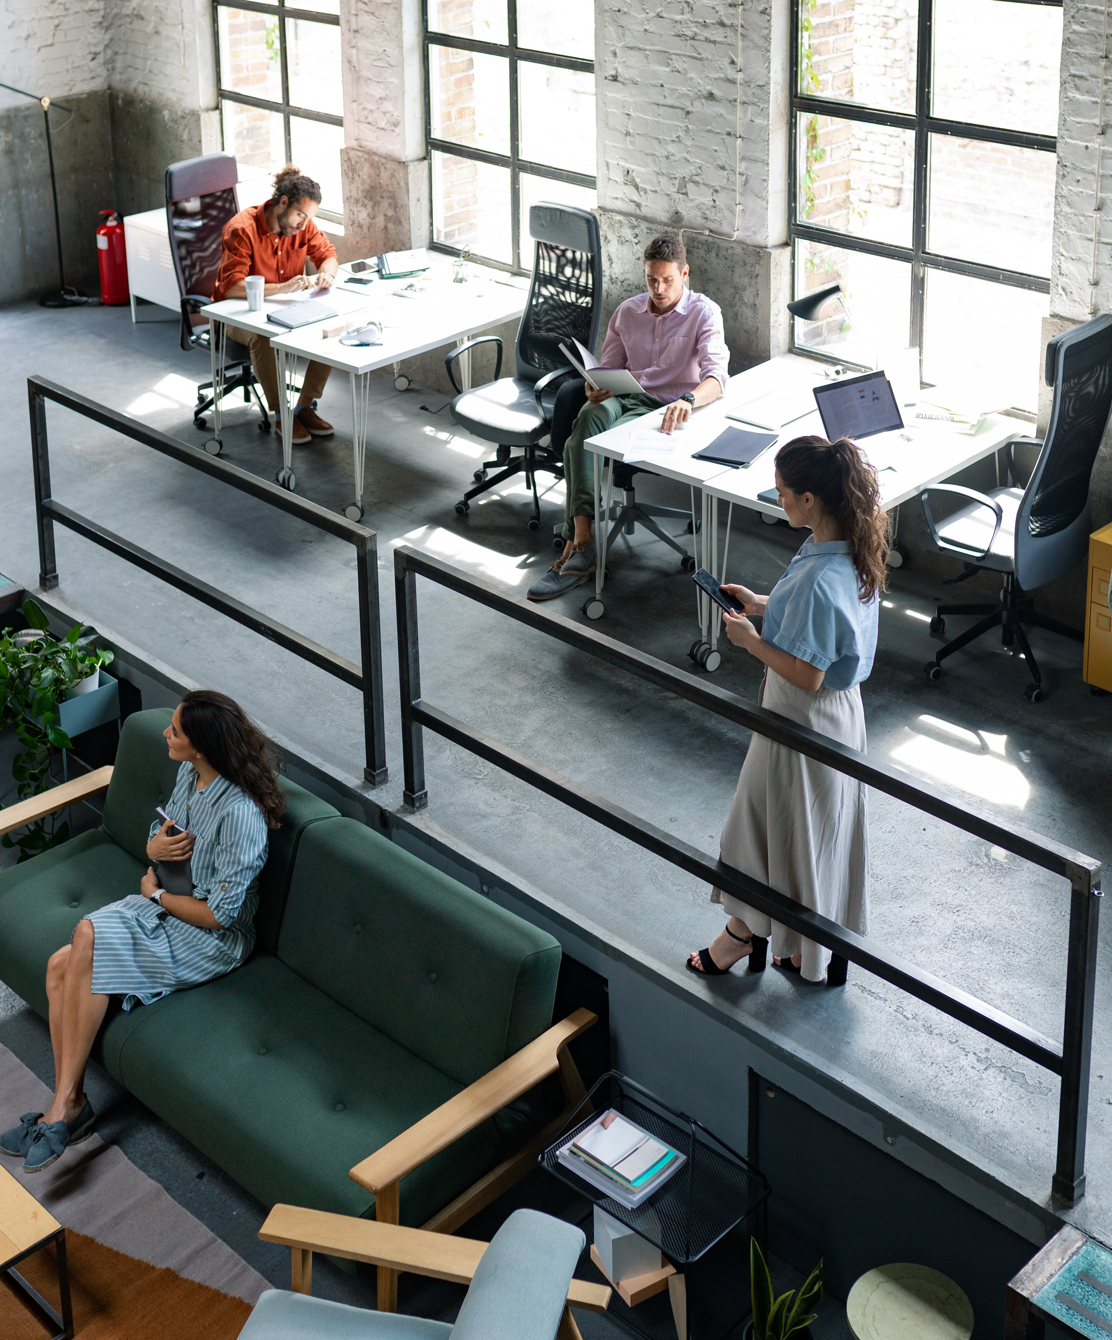 Wide Angle View of a Modern Loft Open Space Office With Businesspeople Working in It